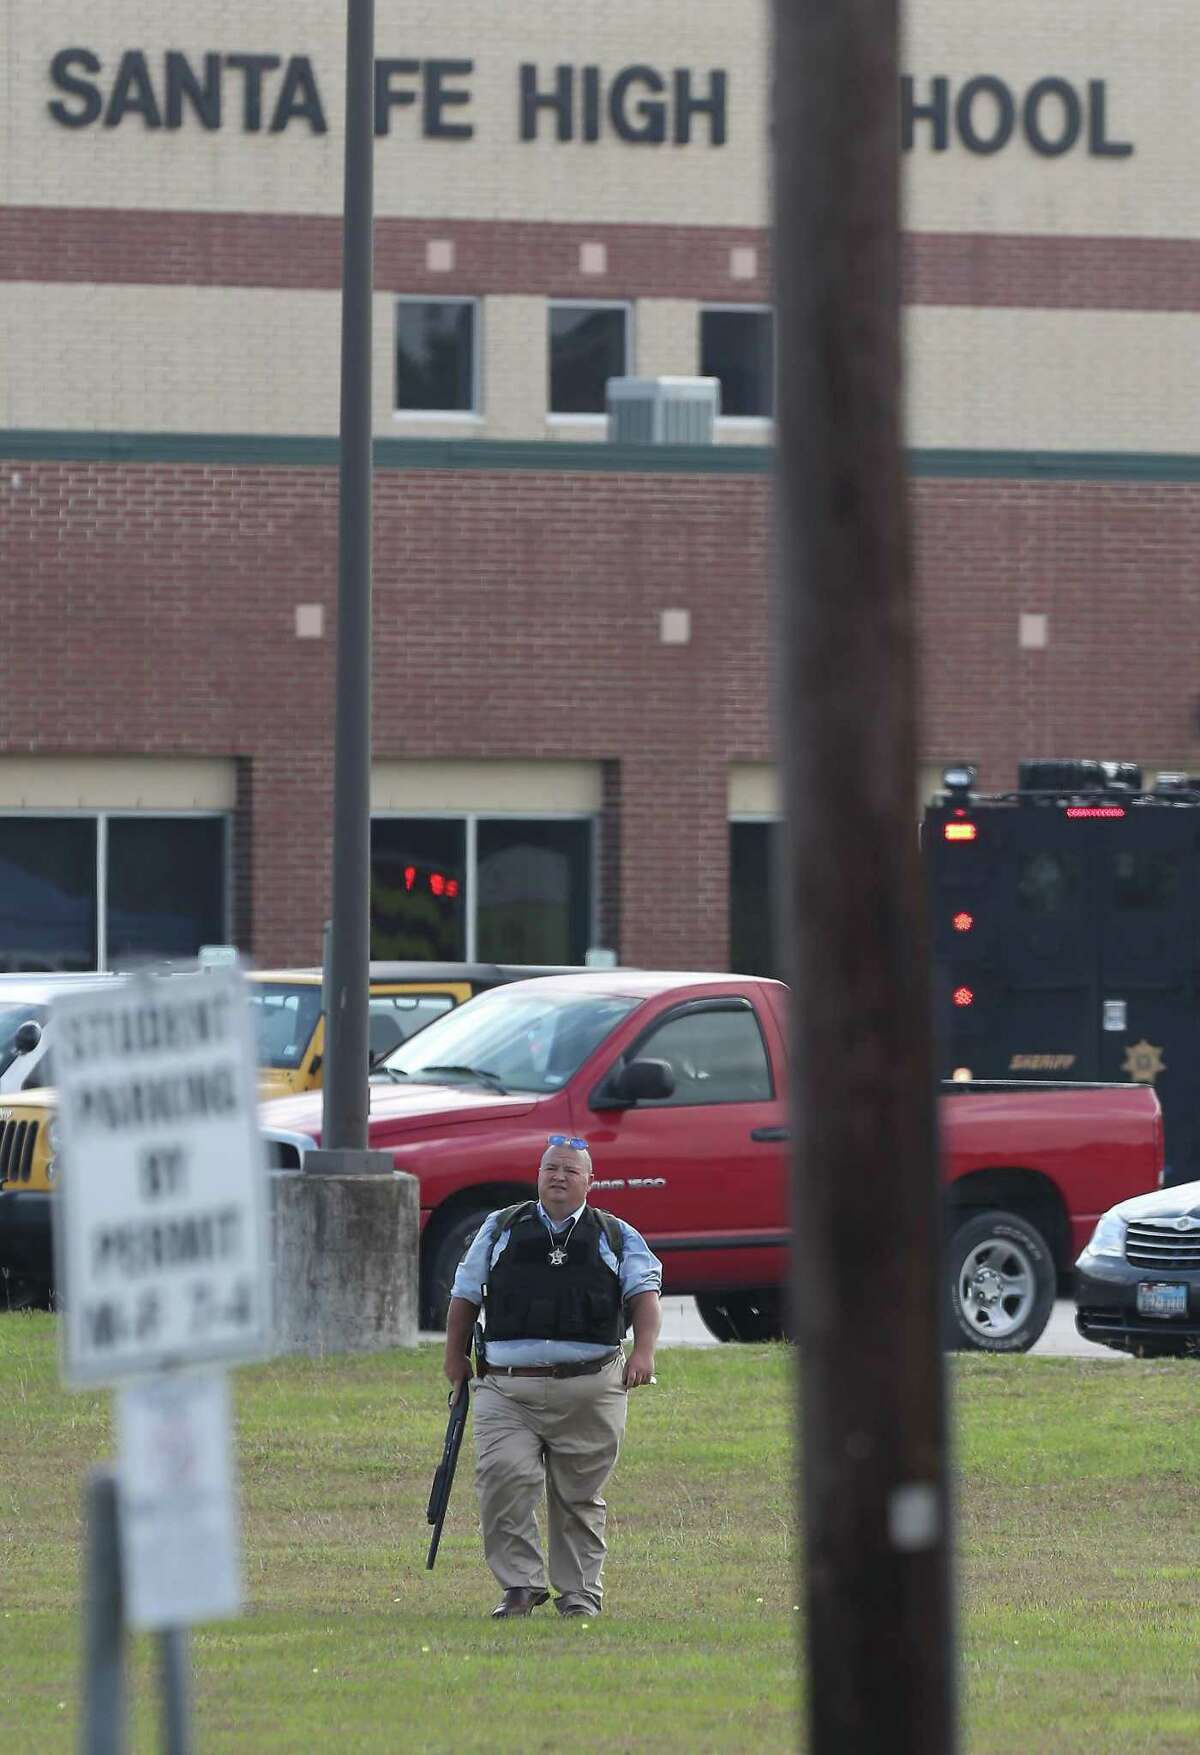 A law enforcement officer leaves Santa Fe High School in May 2018, when police say a student shot and killed 10 people at the campus. Many school districts have increased their police presence and safety measures at campuses in the wake of numerous school shootings in recent years.